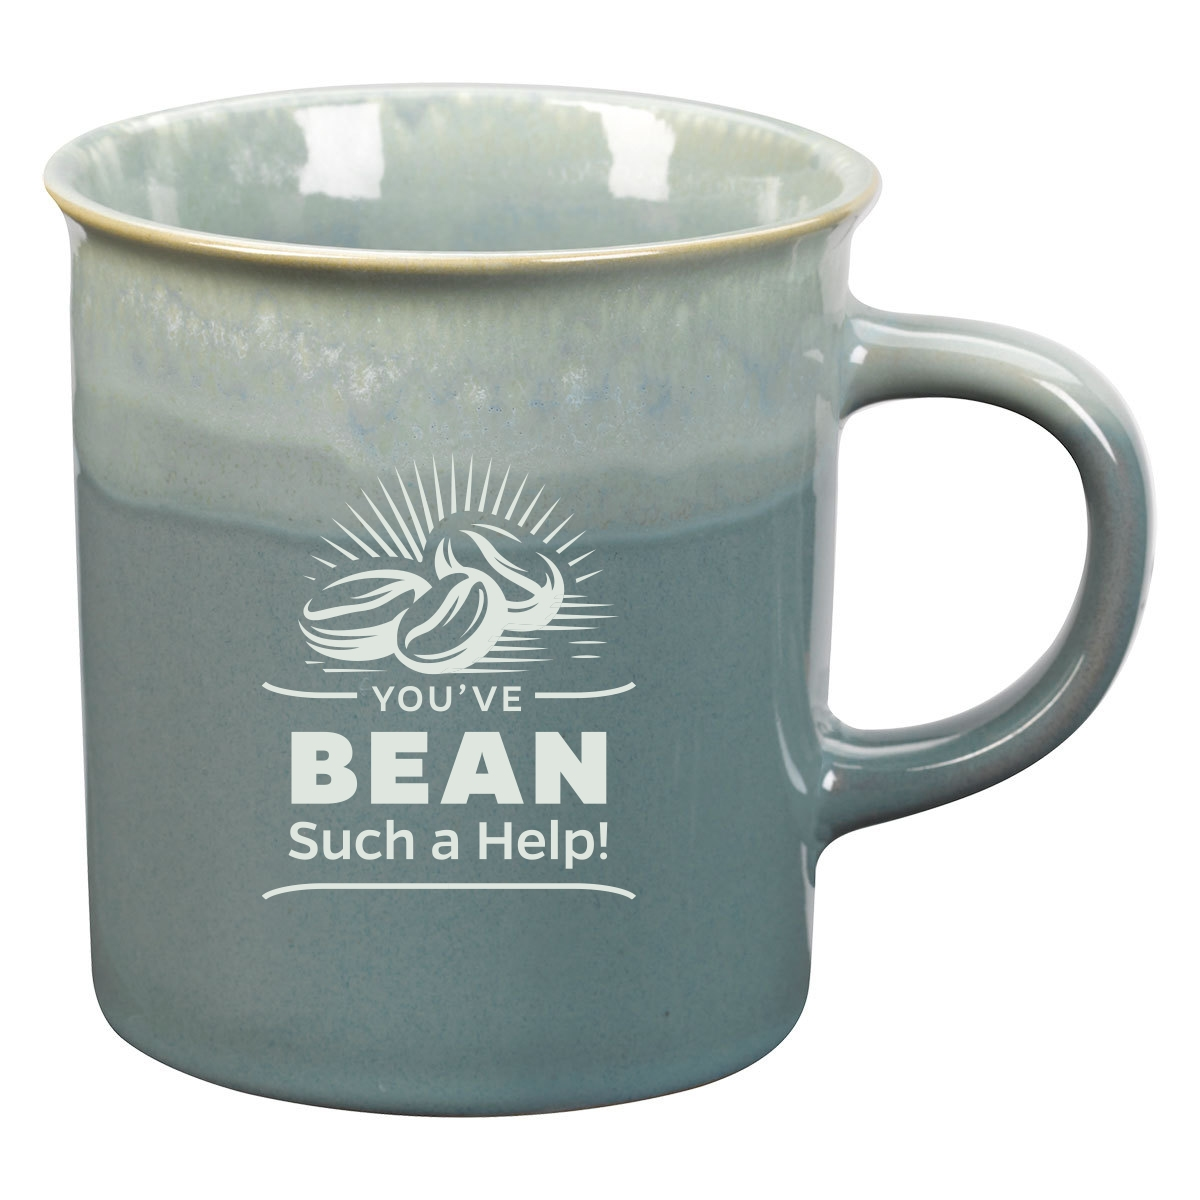 Coffee mug with appreciation logo